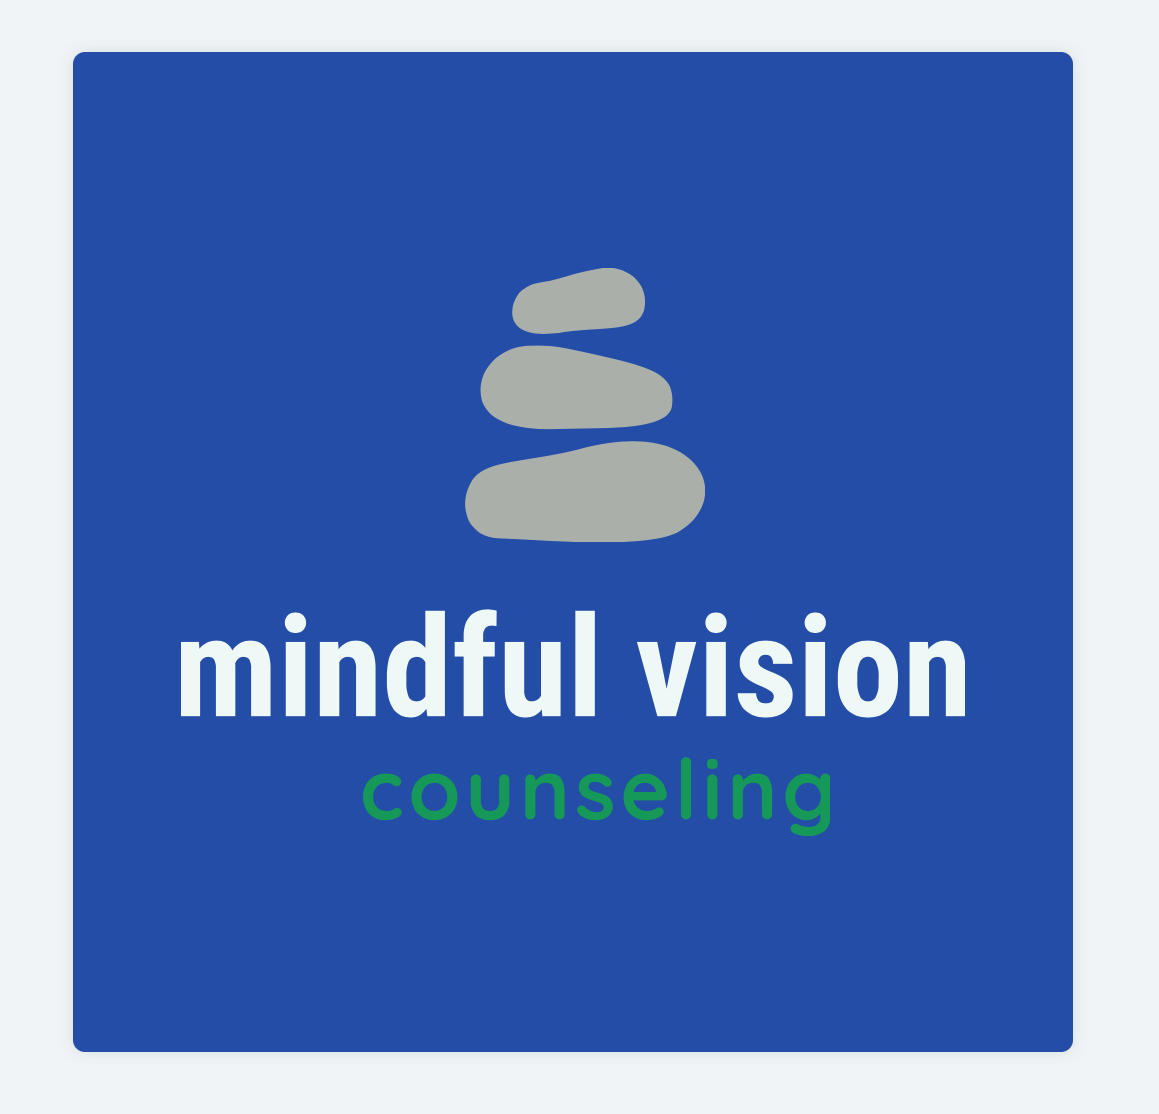 Mindful Vision Counseling logo